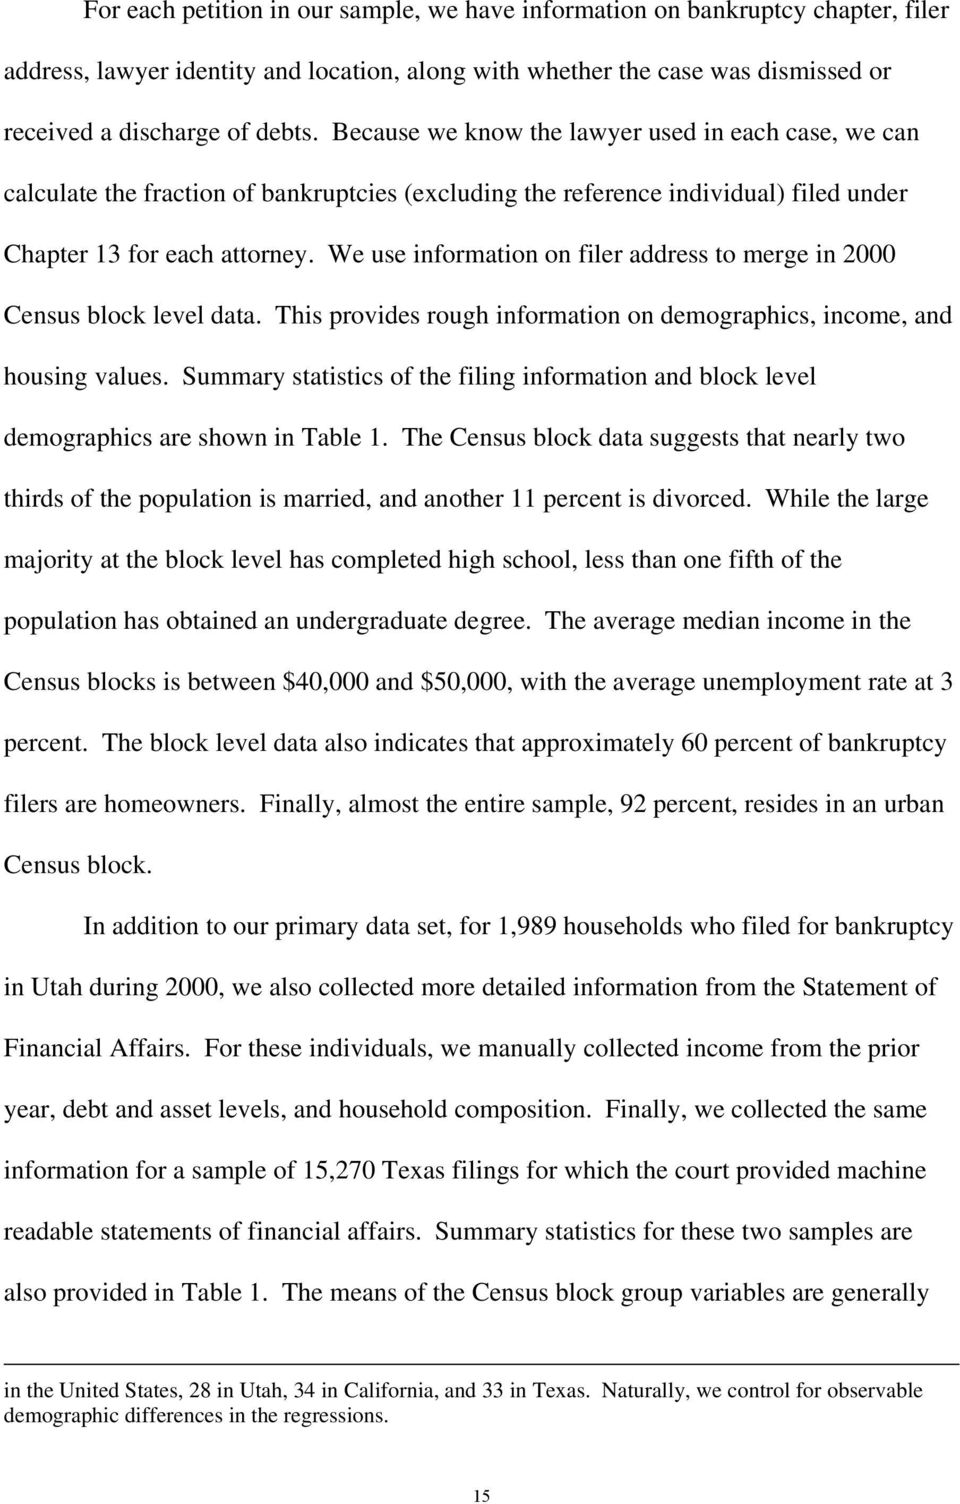 We use information on filer address to merge in 2000 Census block level data. This provides rough information on demographics, income, and housing values.